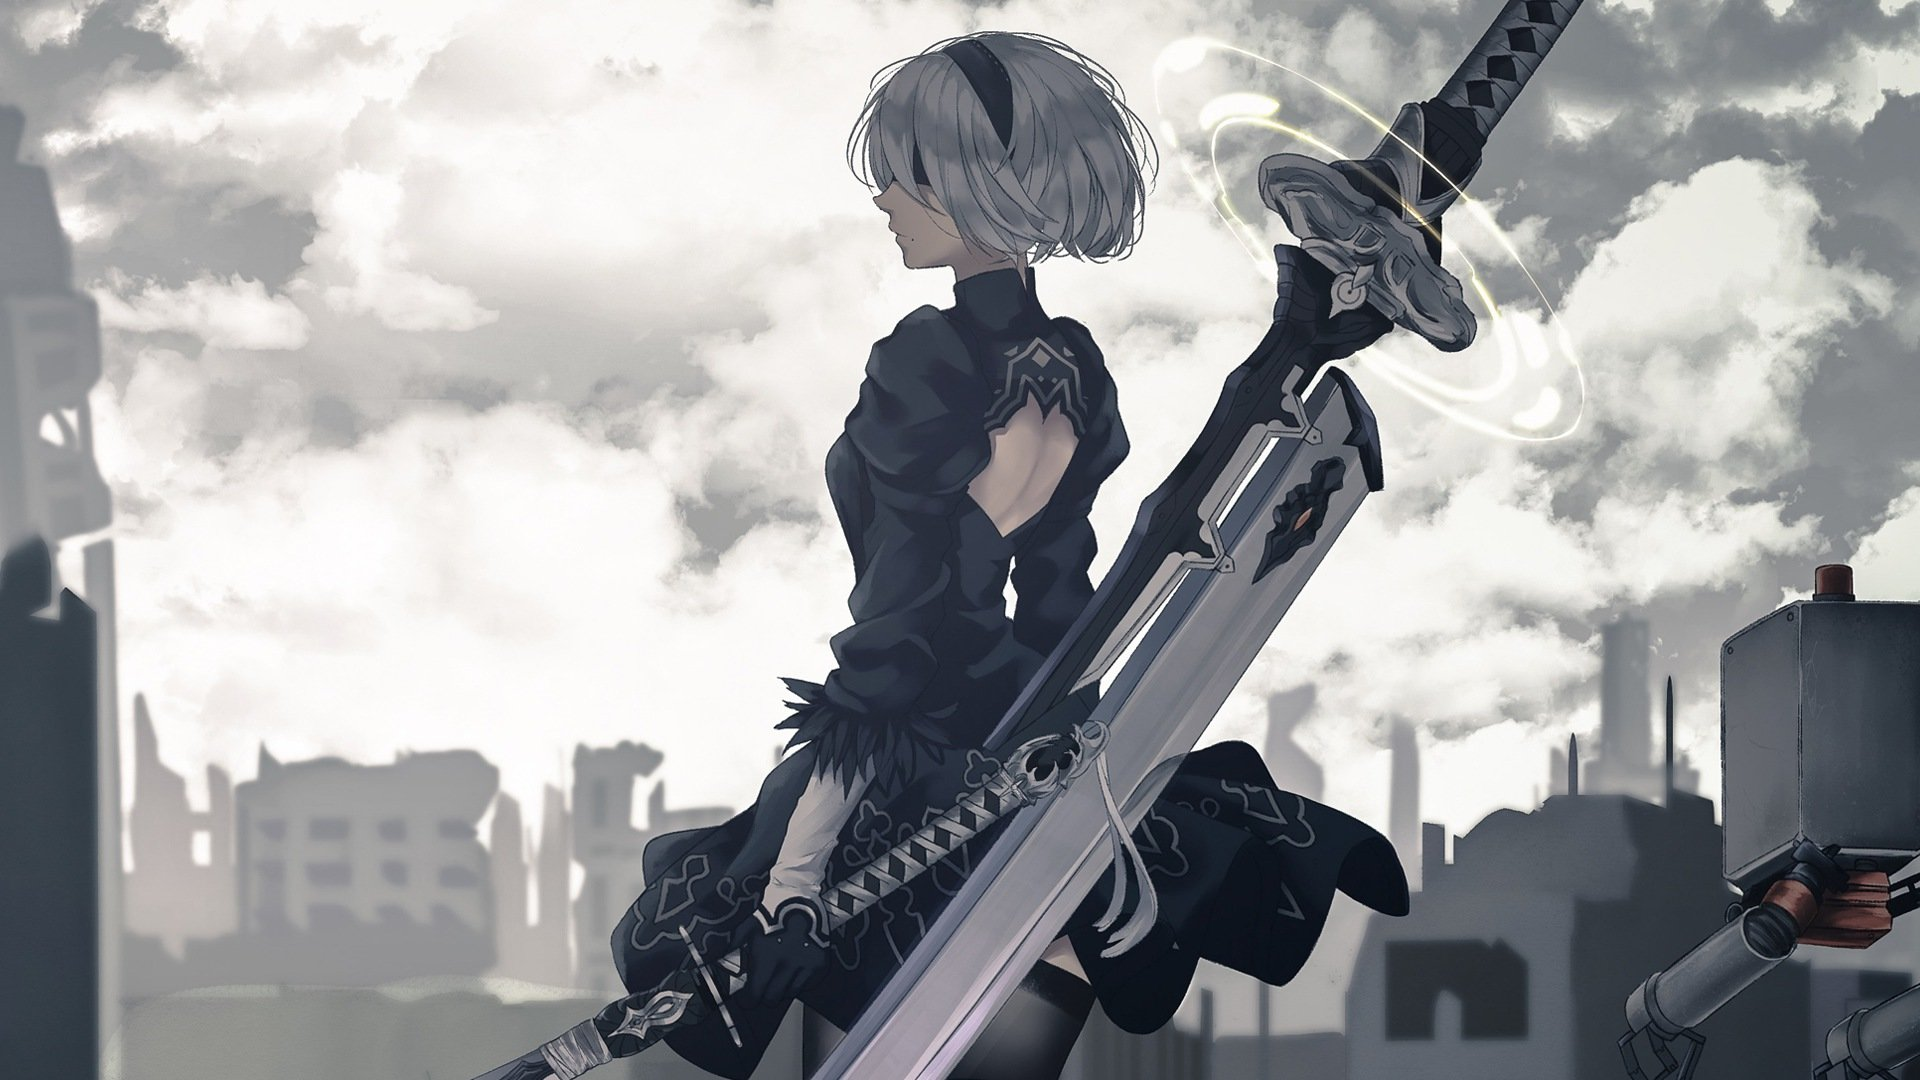 Nier Automata Wallpapers 1920x1080 Full Hd 1080p Desktop